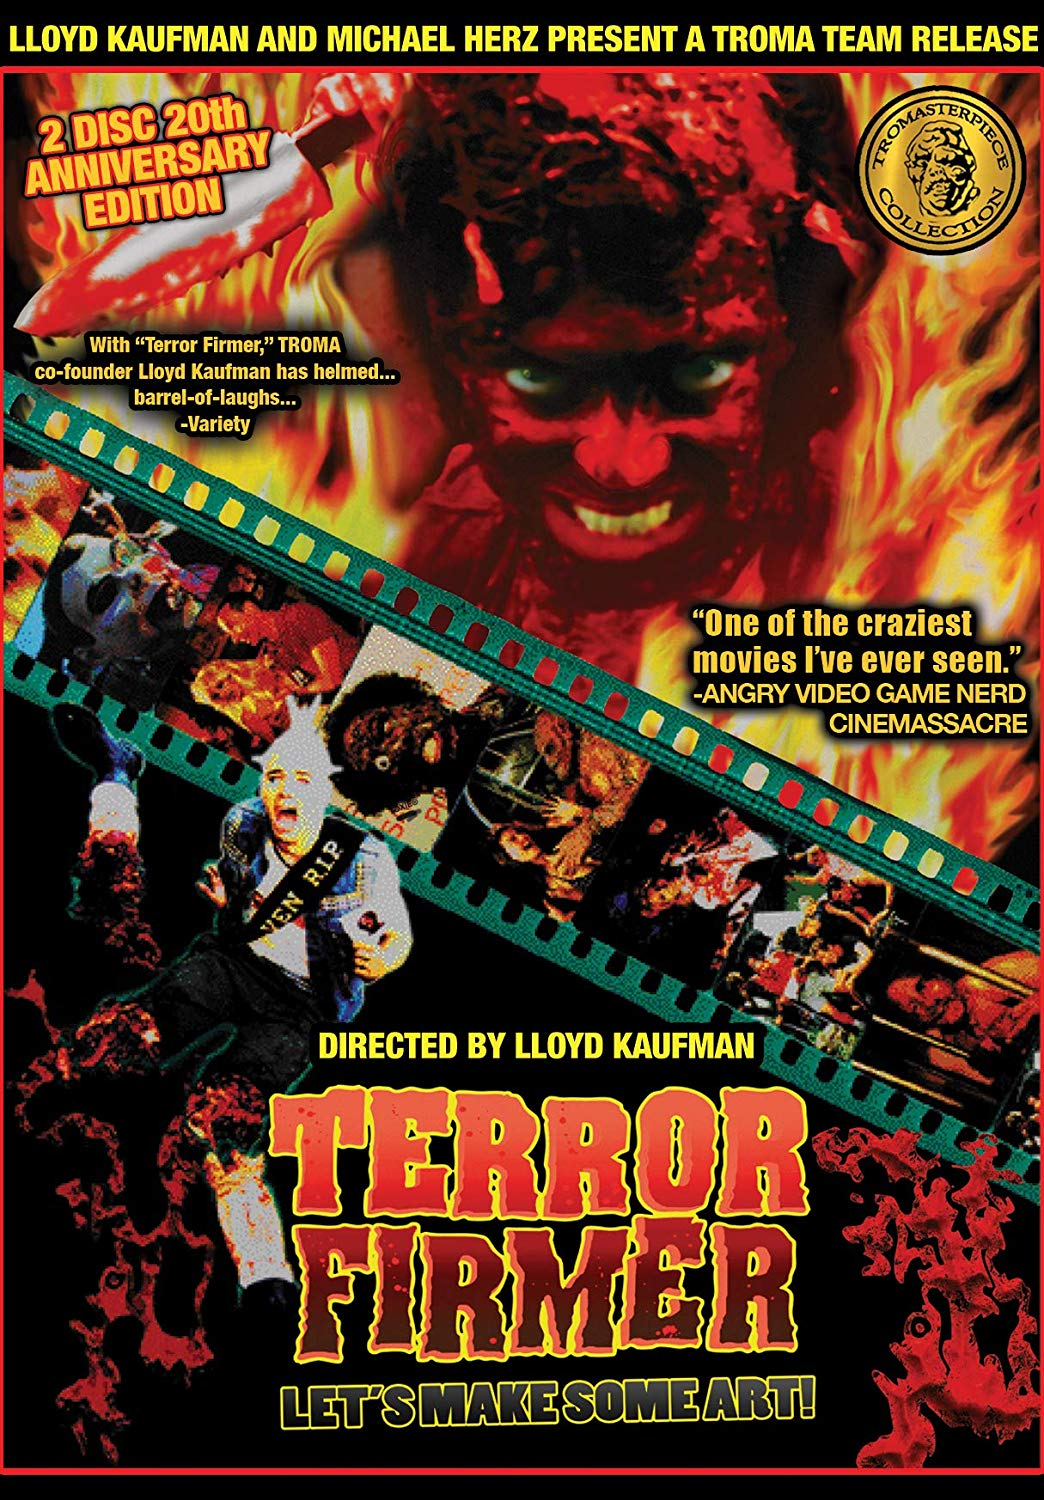 Lloyd Kaufman's TERROR FIRMER: The 20th Anniversary Edition 2-Disc Blu-ray! Available in Stores Worldwide 11th February from Troma